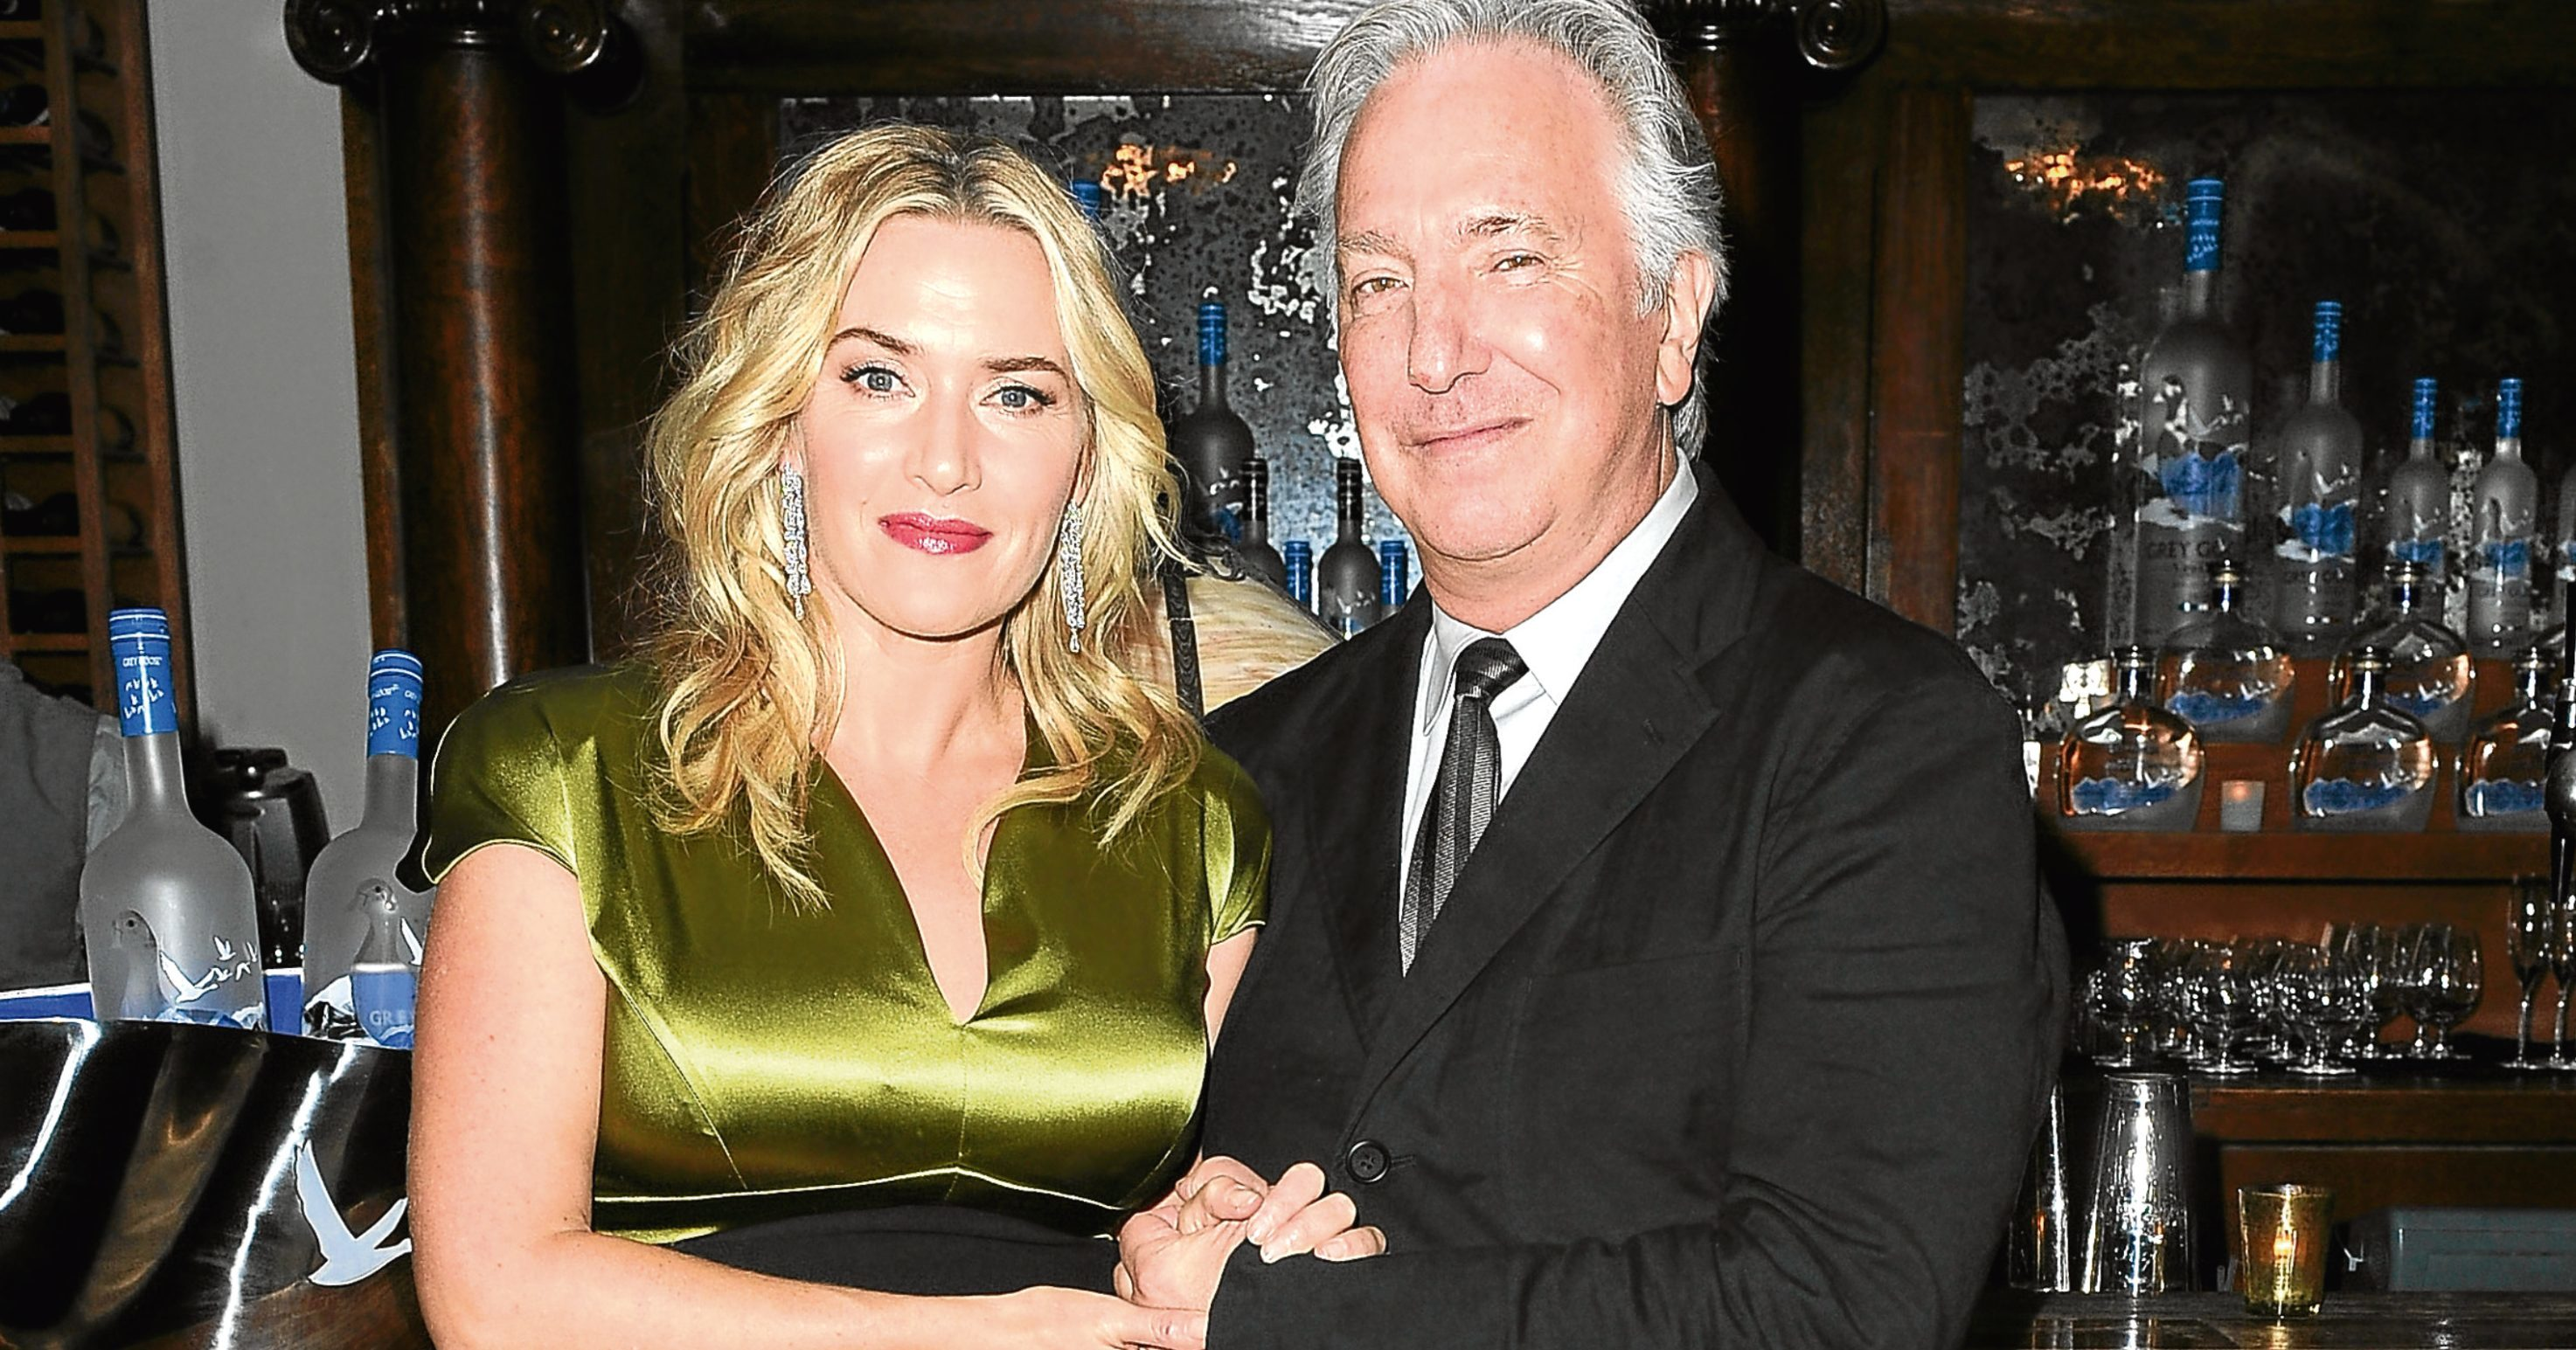 Alan Rickman brought his film A Little Chaos to the festival in 2015 (Photo by Ernesto Distefano/Getty Images for GREY GOOSE Vodka)